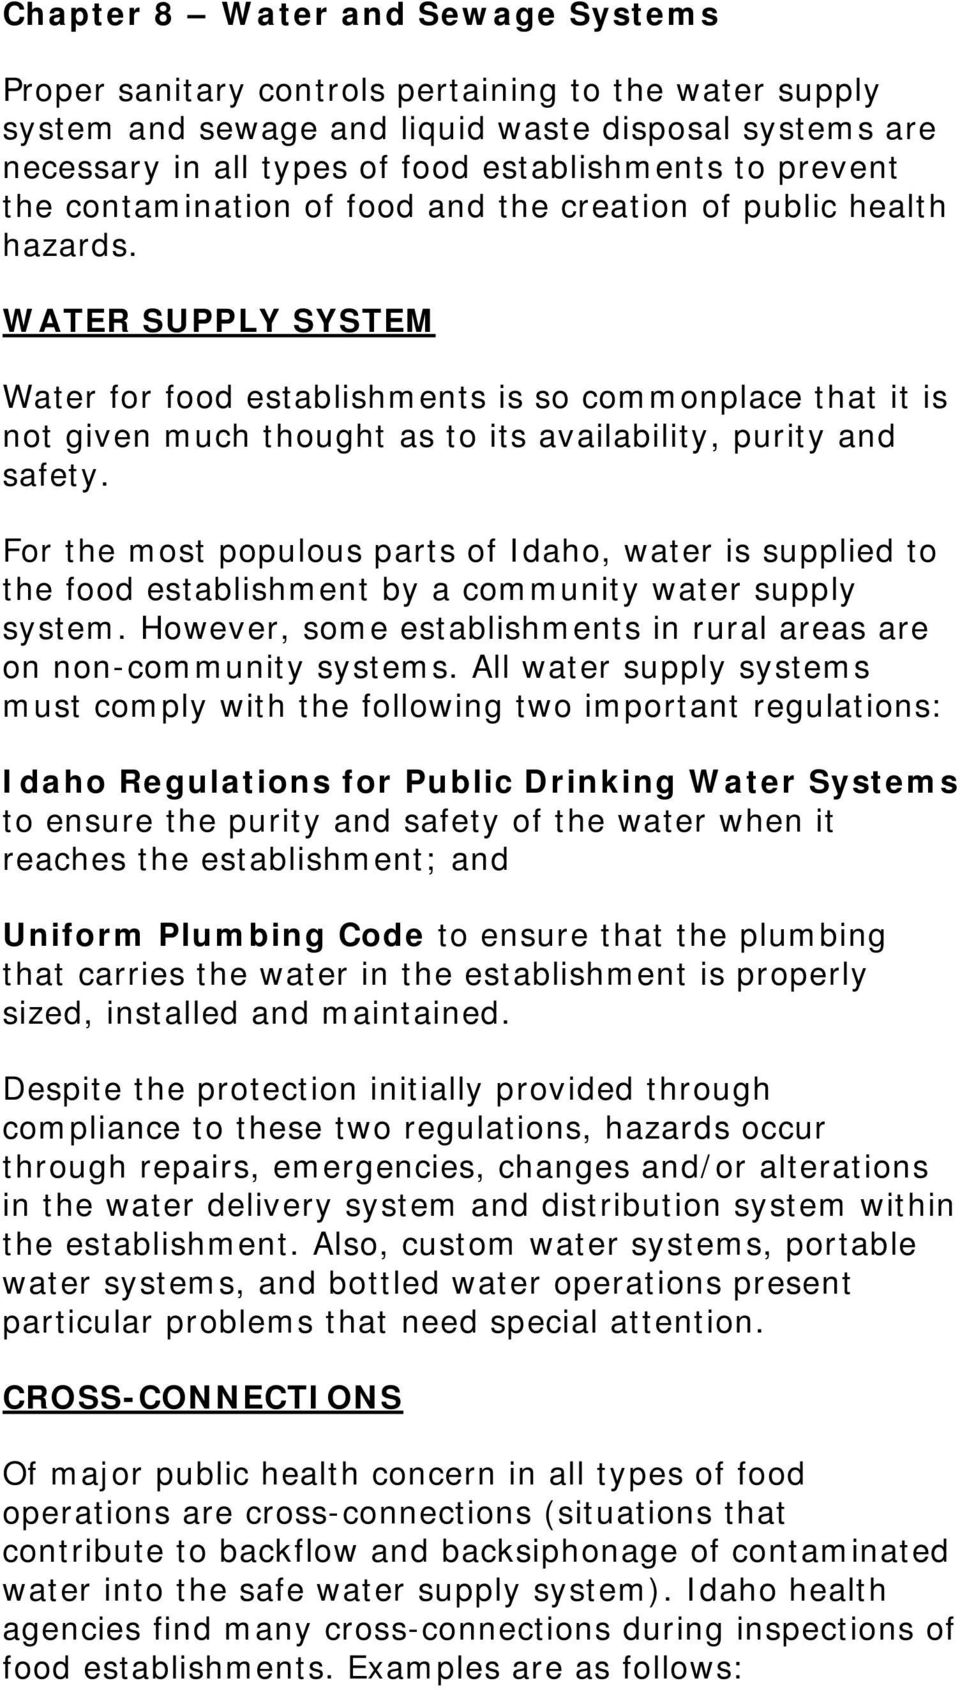 WATER SUPPLY SYSTEM Water for food establishments is so commonplace that it is not given much thought as to its availability, purity and safety.